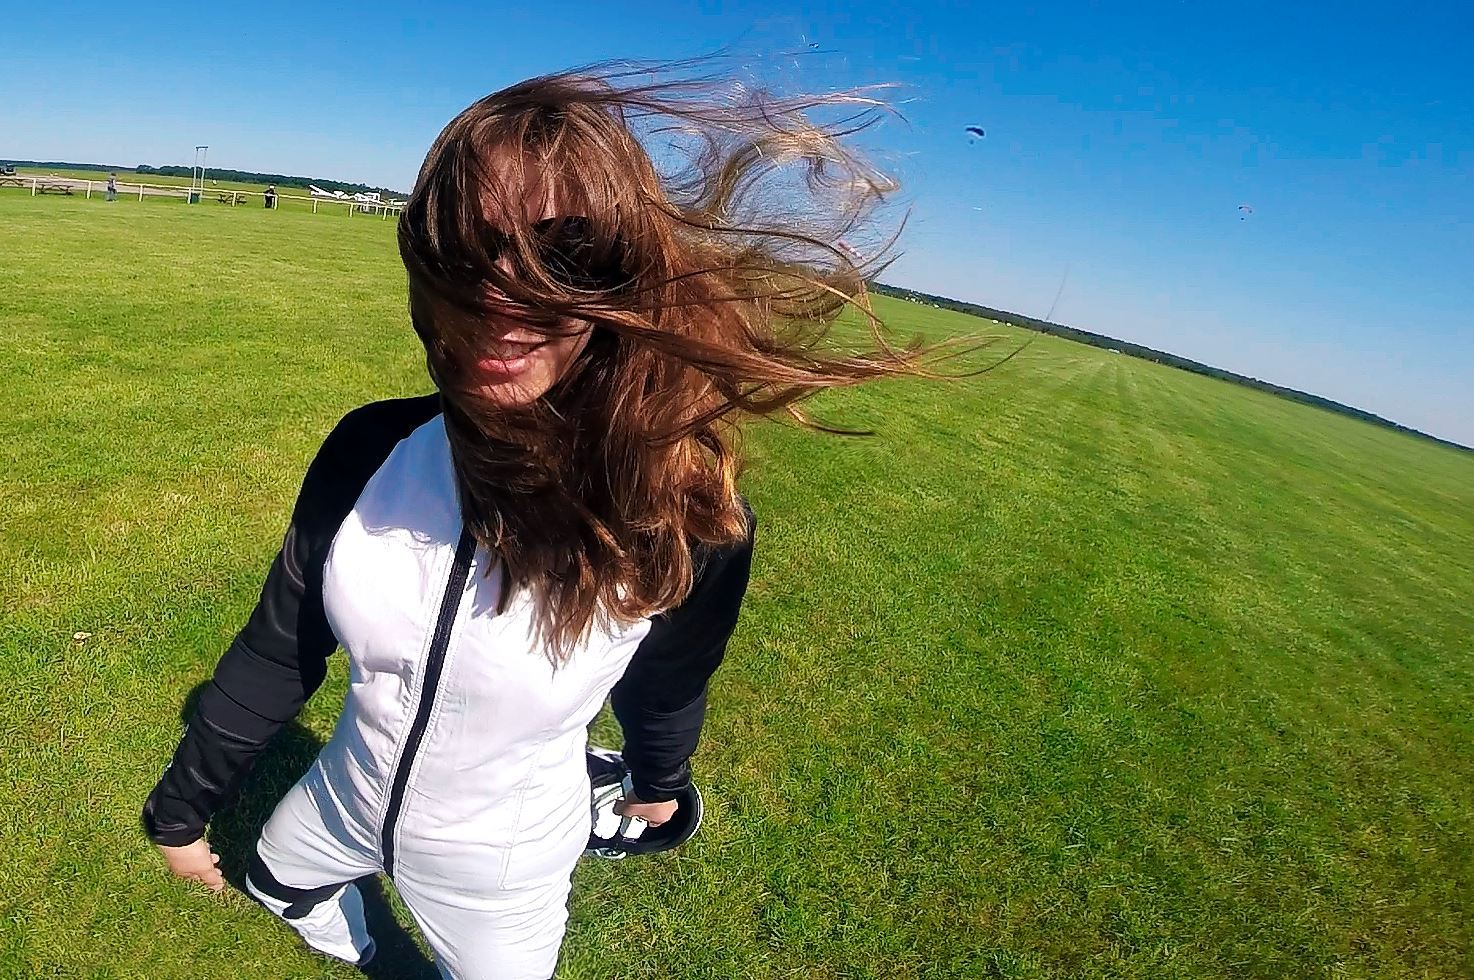 Strong wind ;)